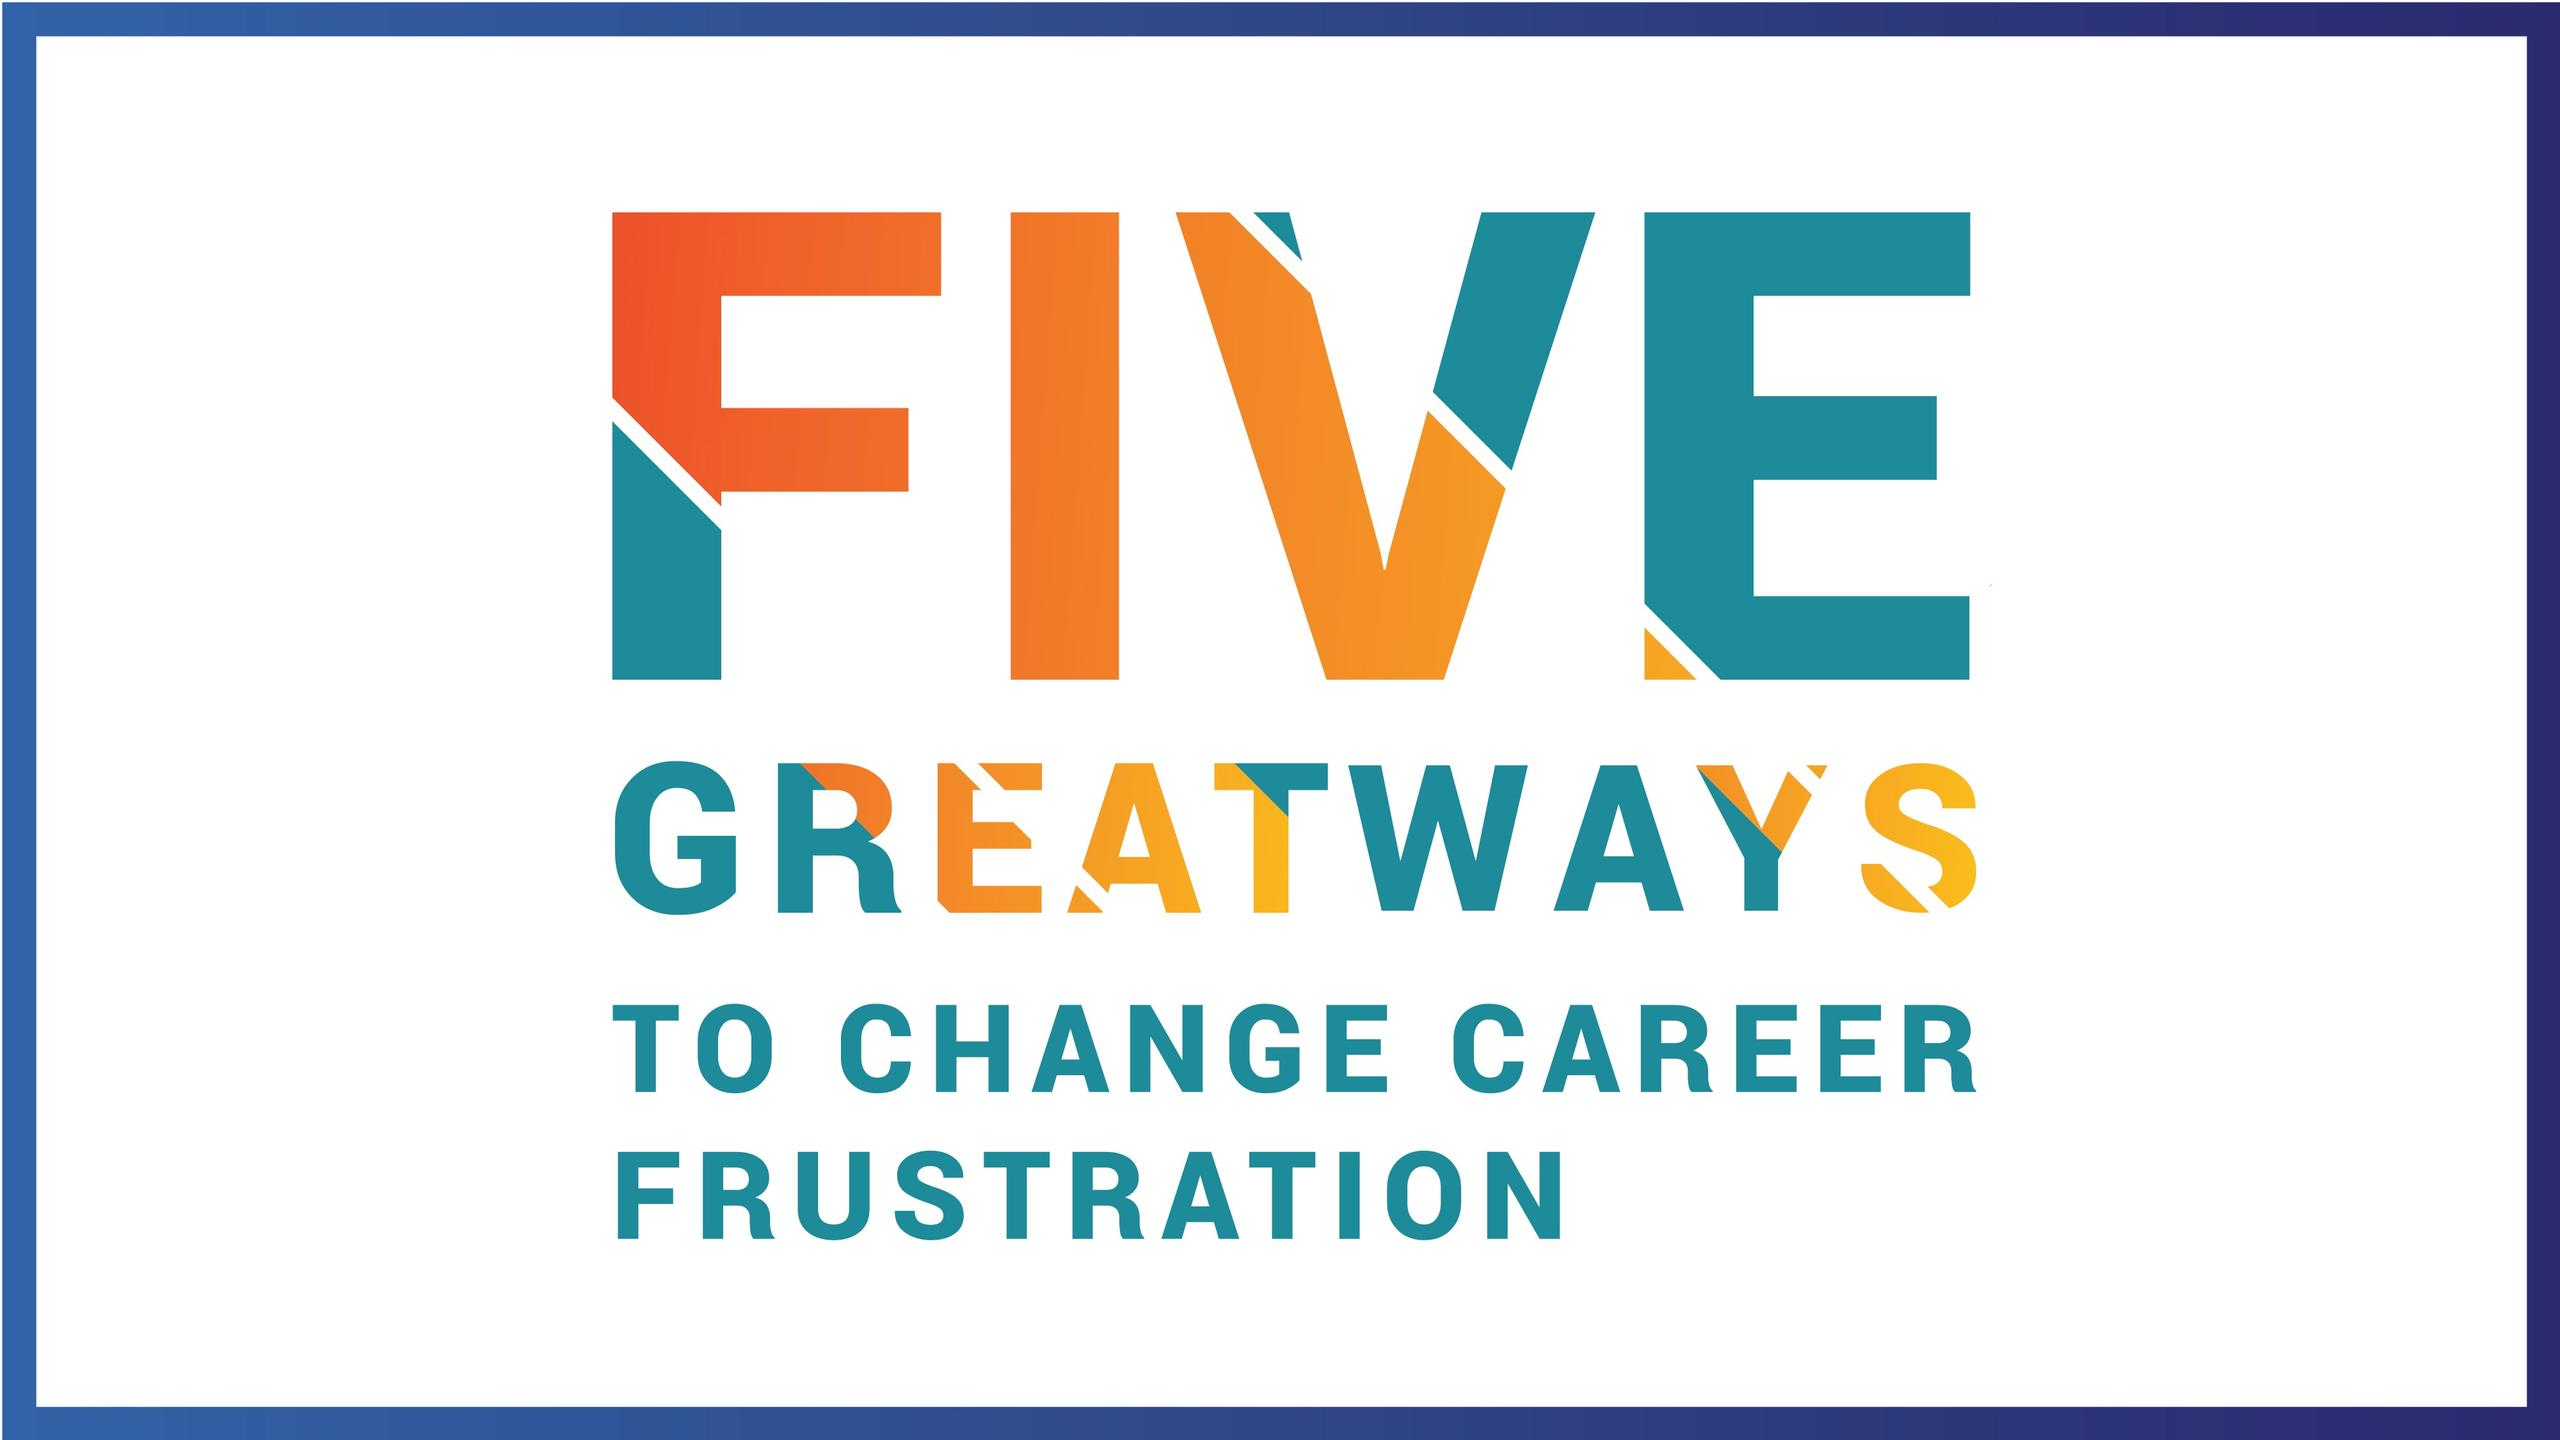 Five great ways to change career frustration